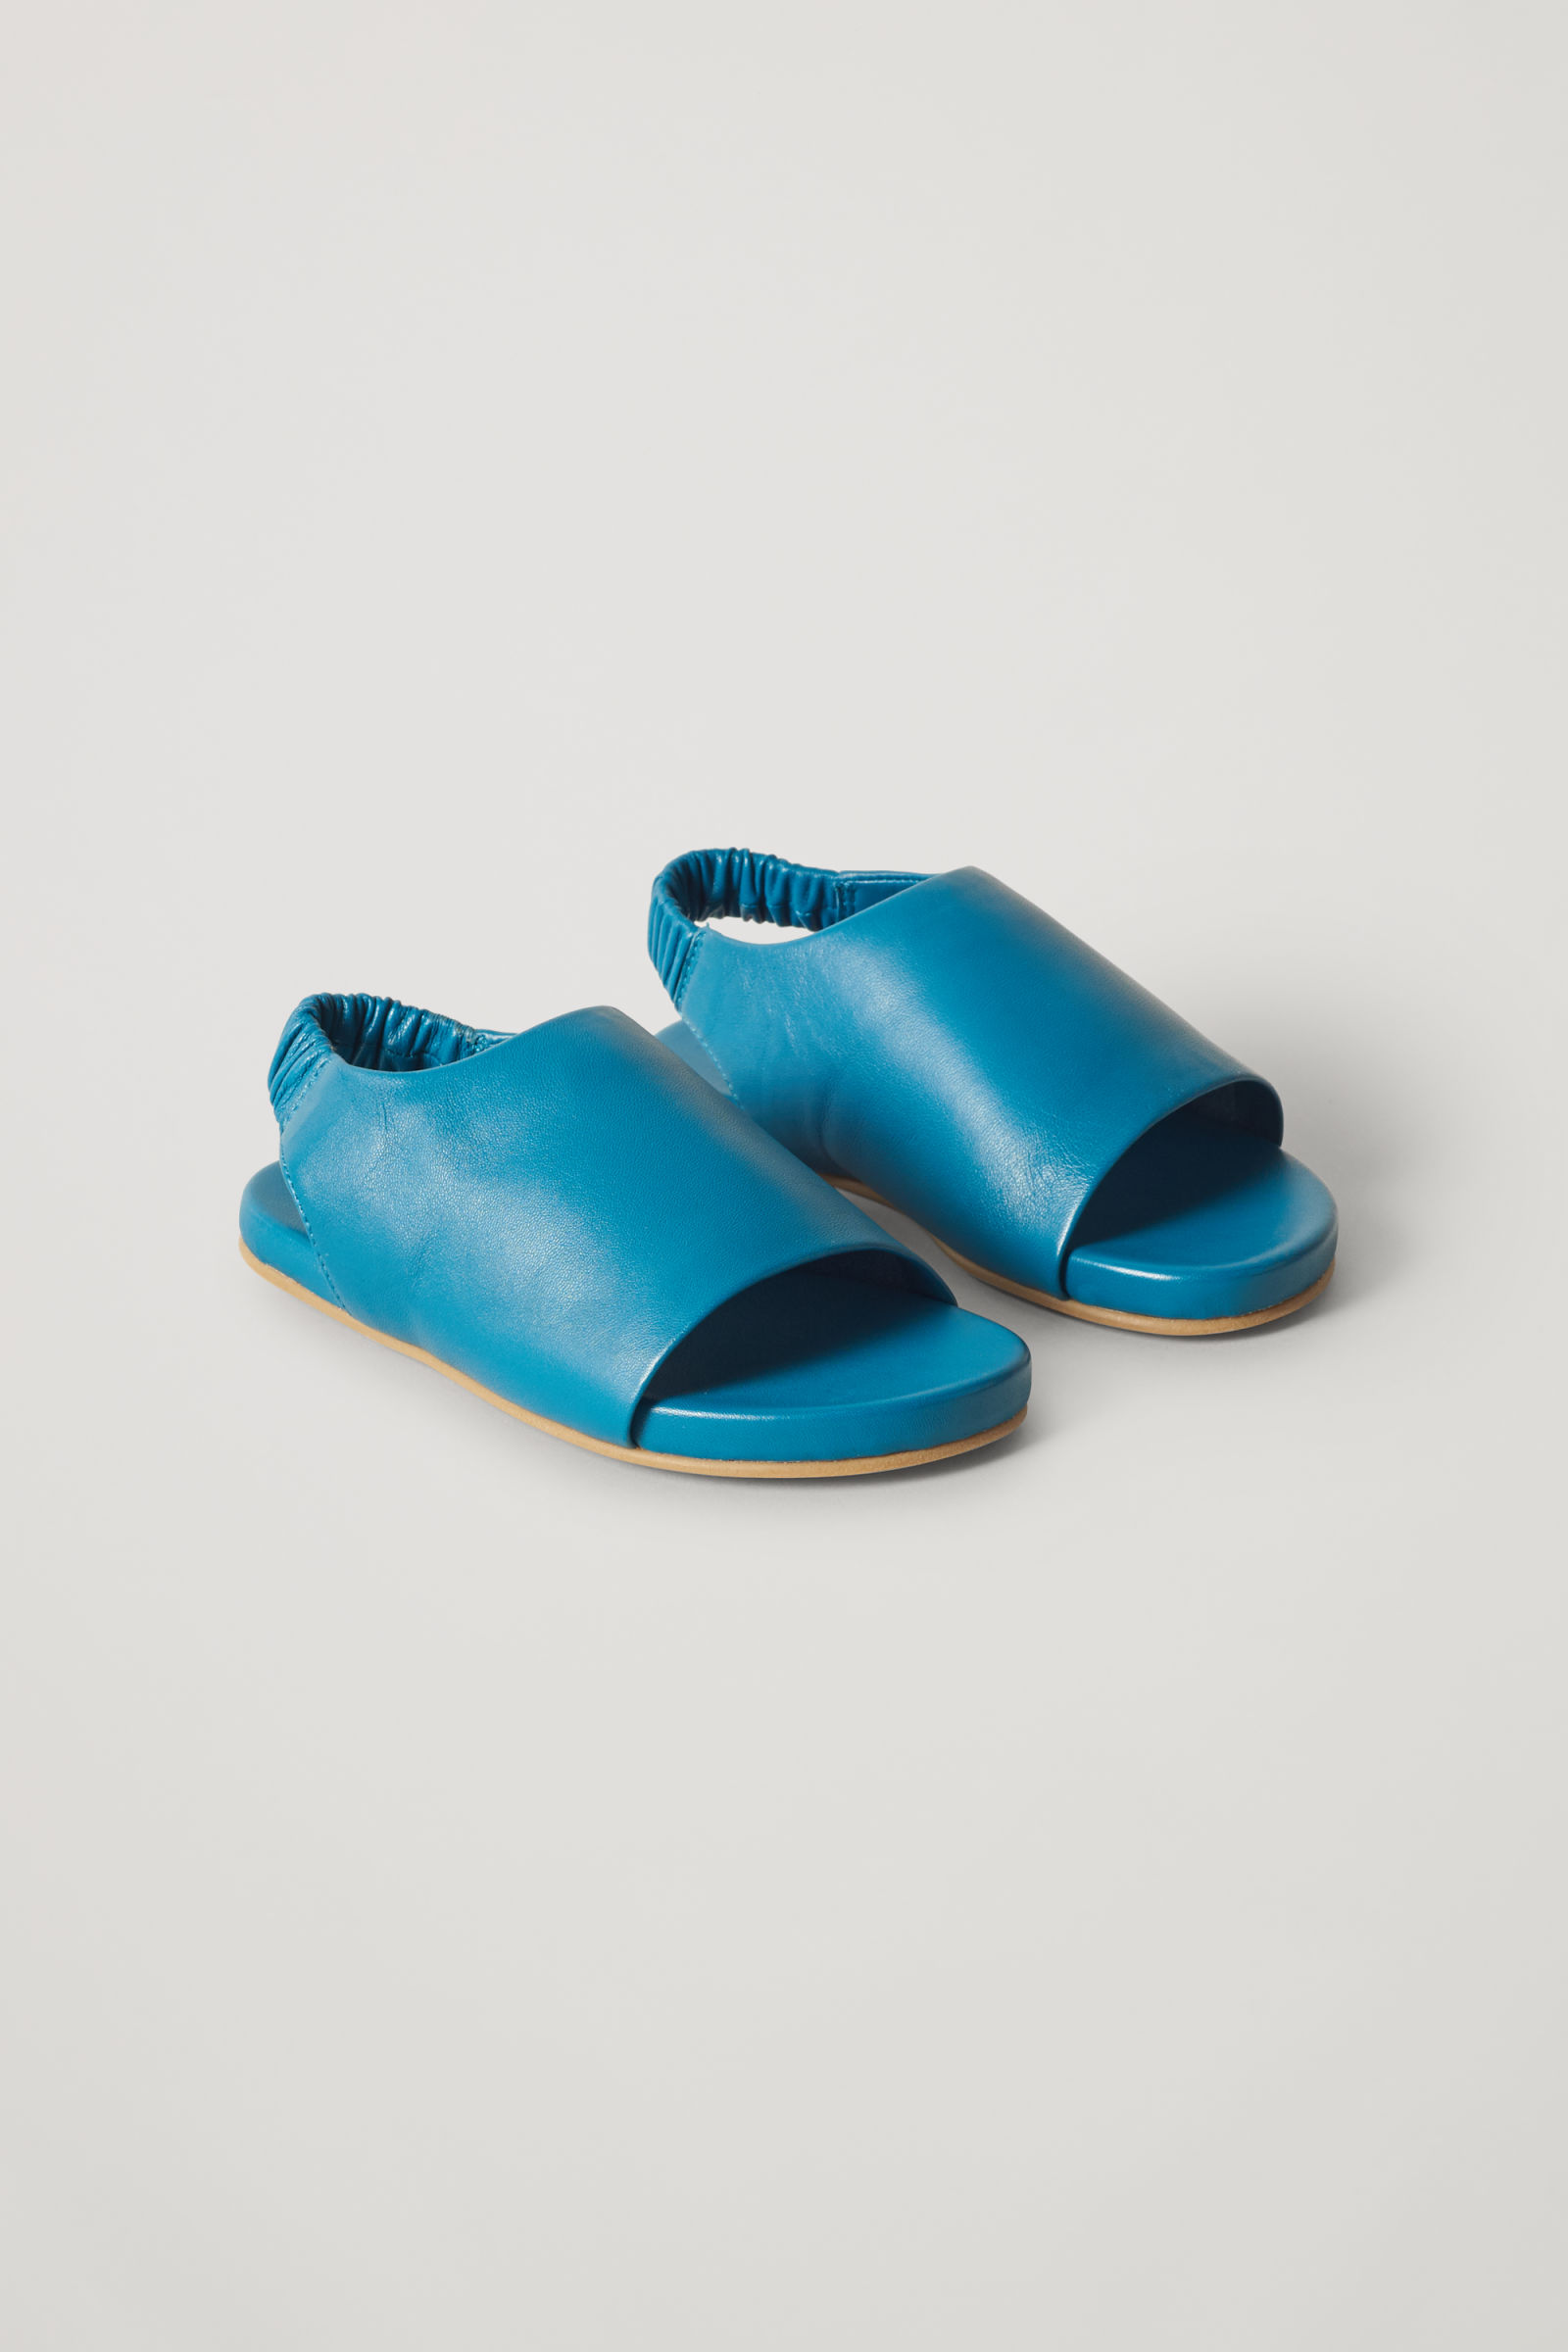 코스 키즈 가죽 밴딩 샌들 COS ELASTICATED LEATHER SANDALS,turquoise